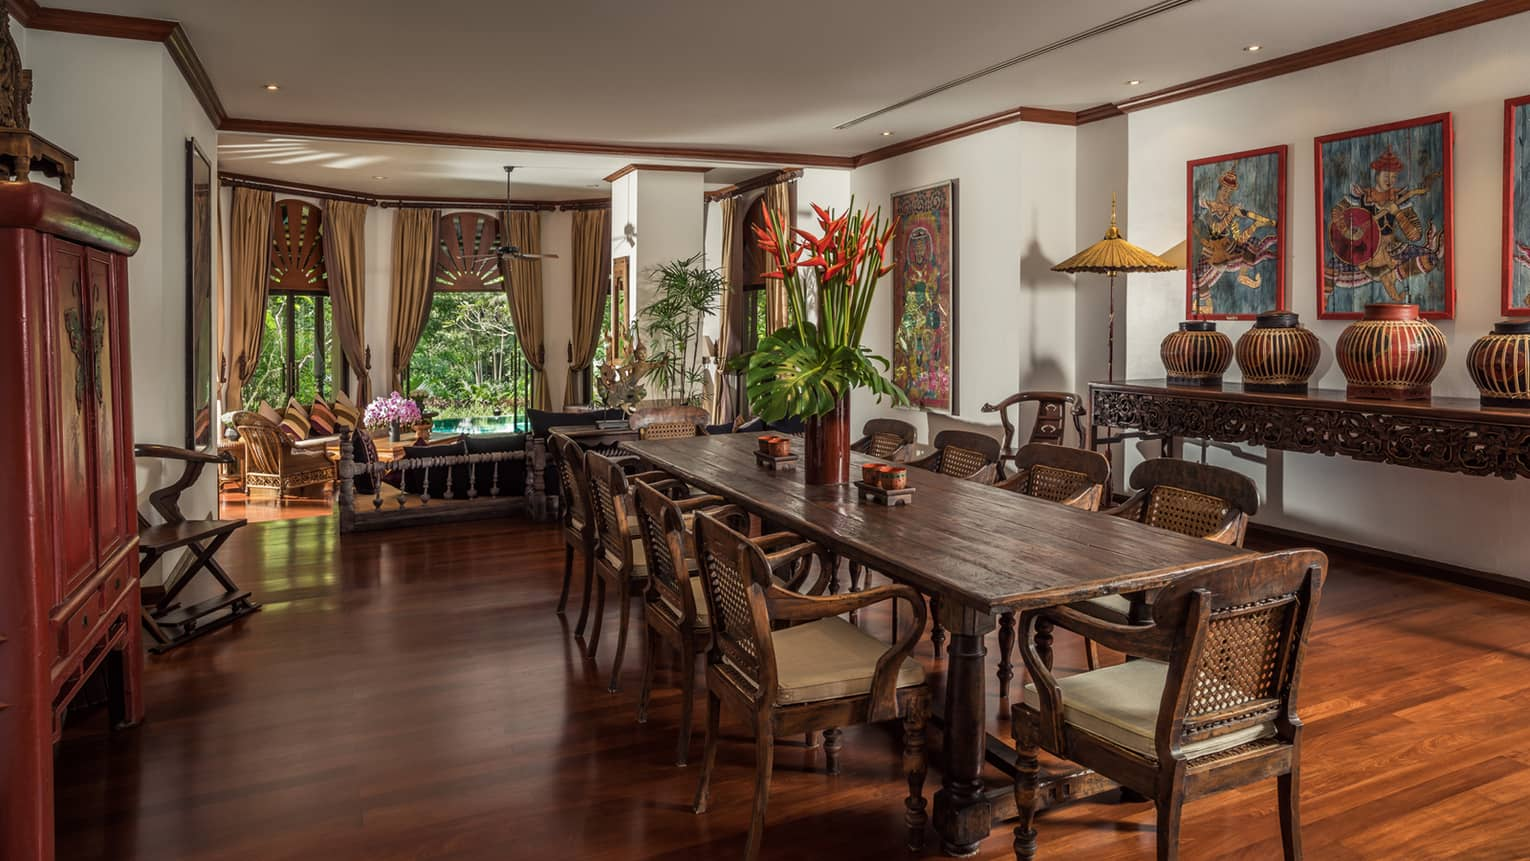 Long wood dining table with vase with tall tropical flowers in bright room